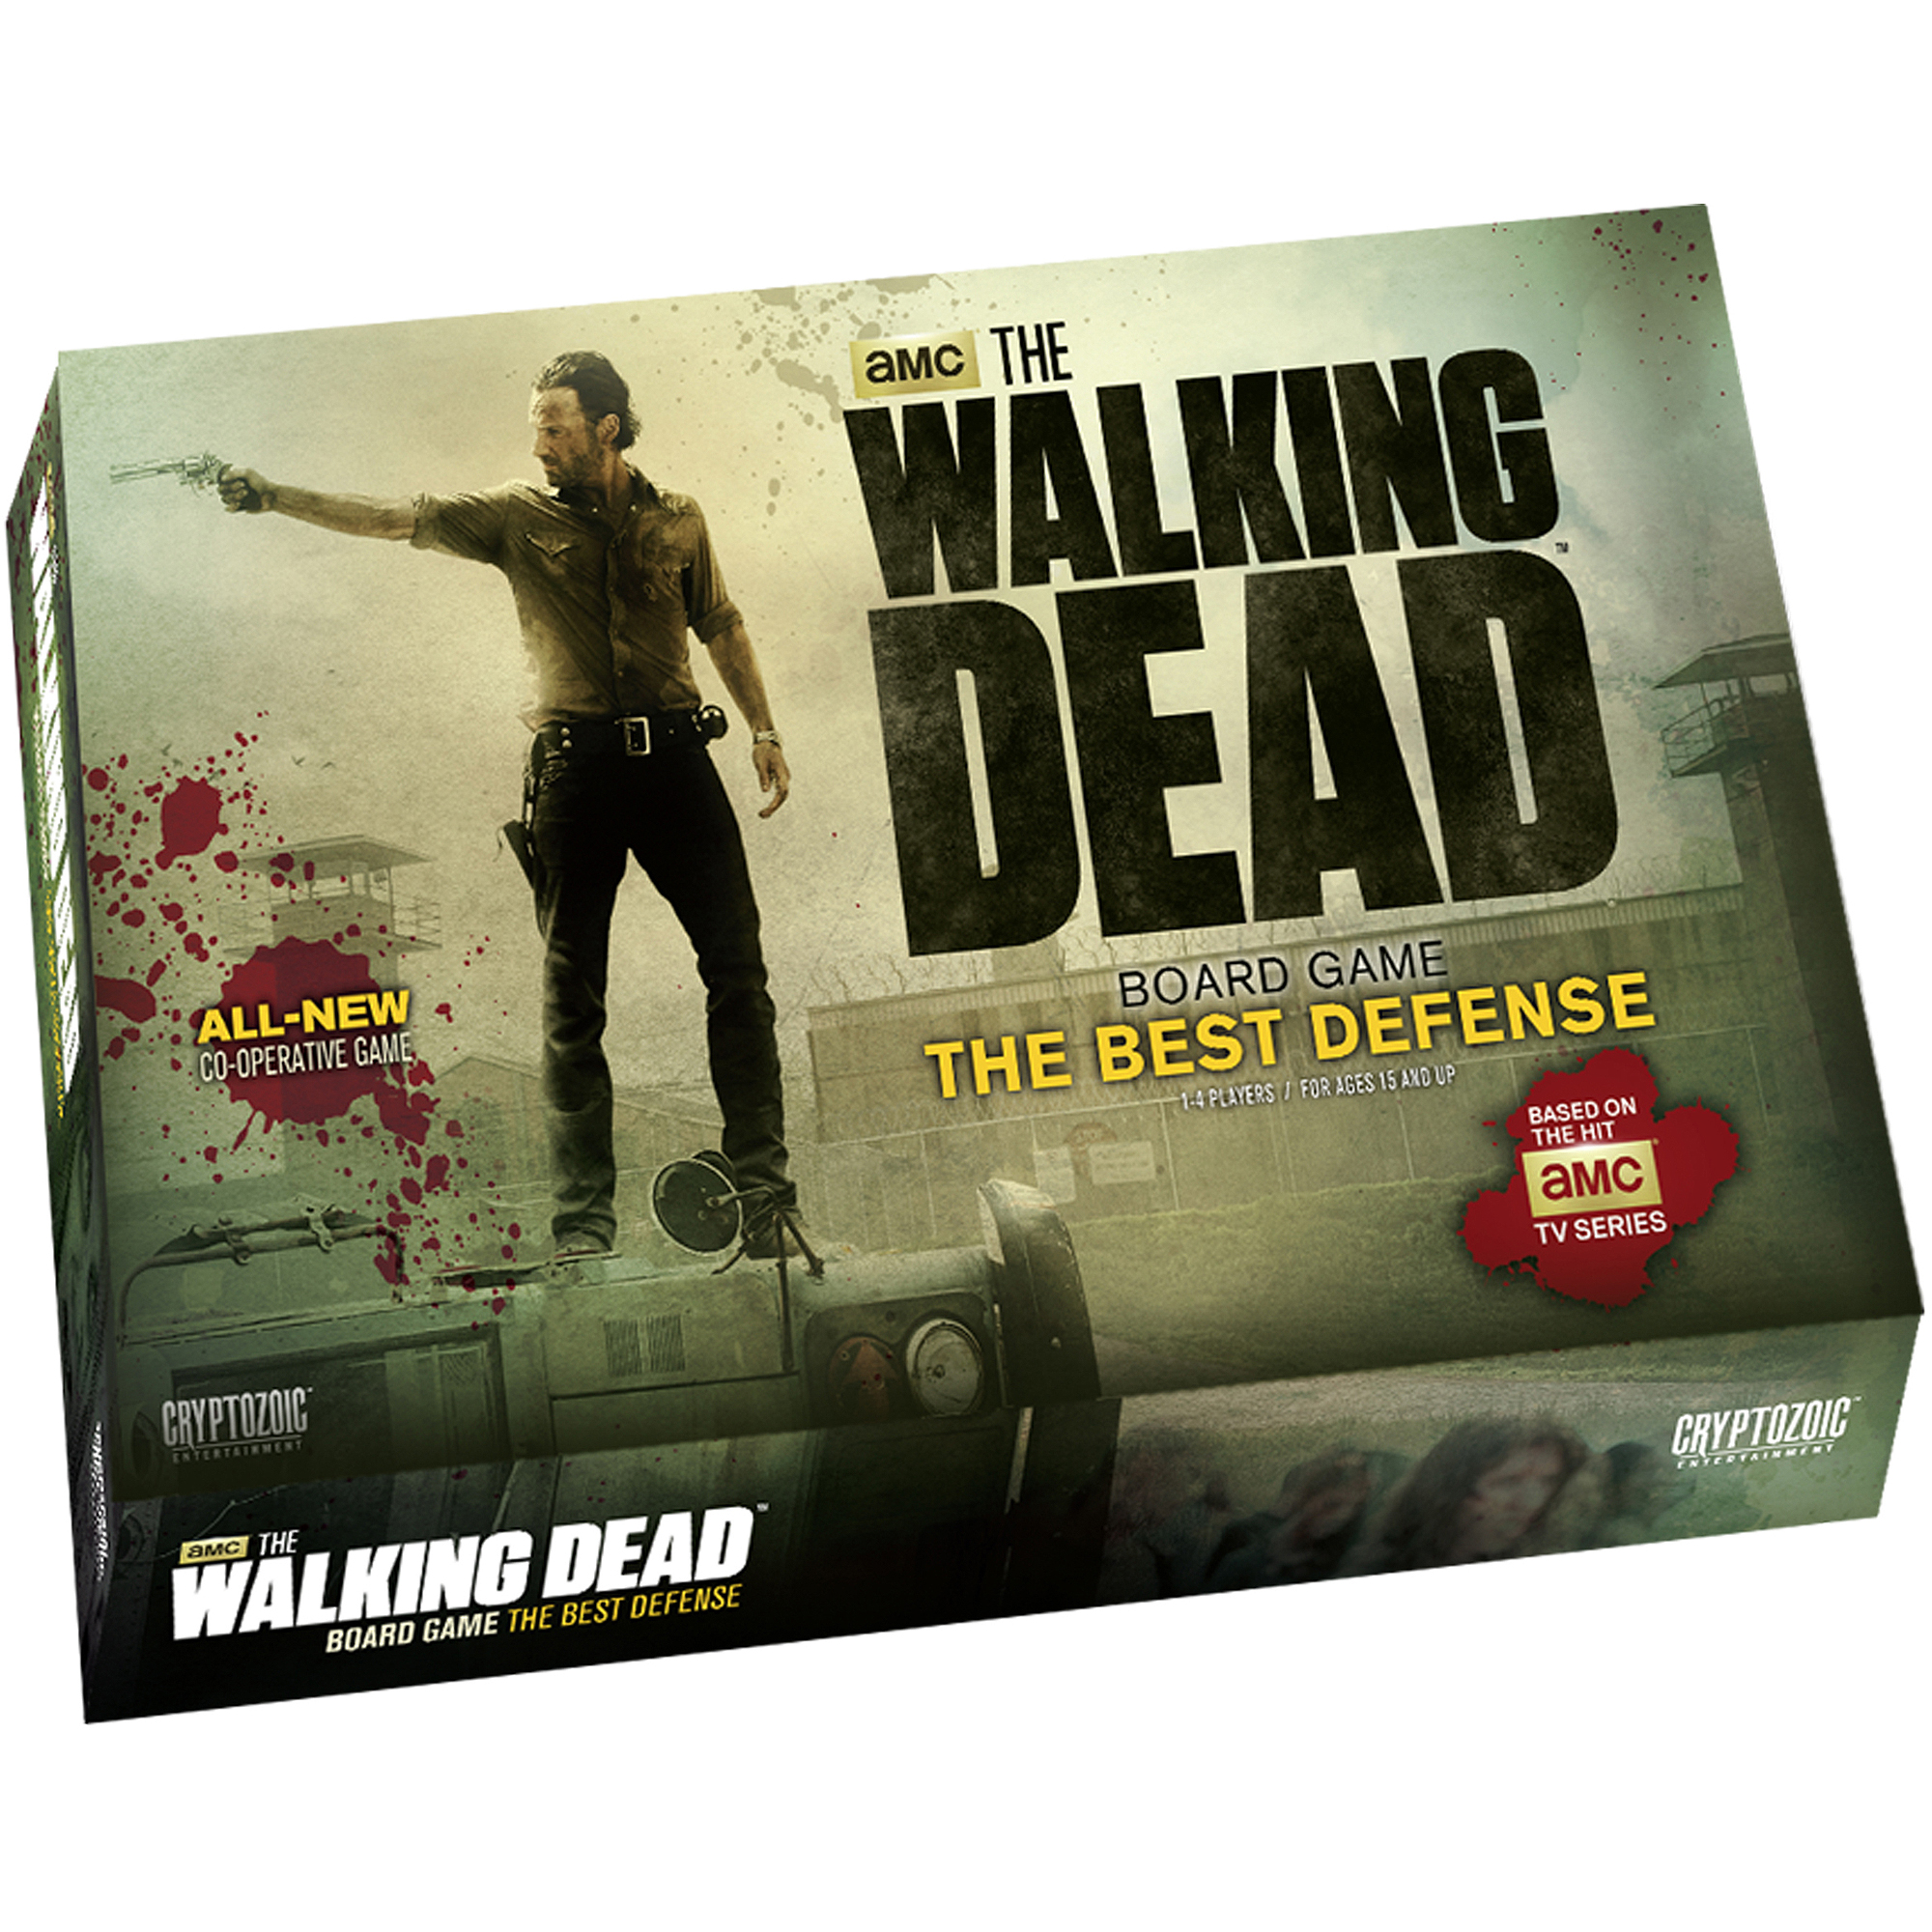 Cryptozoic The Walking Dead Board Game The Best Defense by Cryptozoic